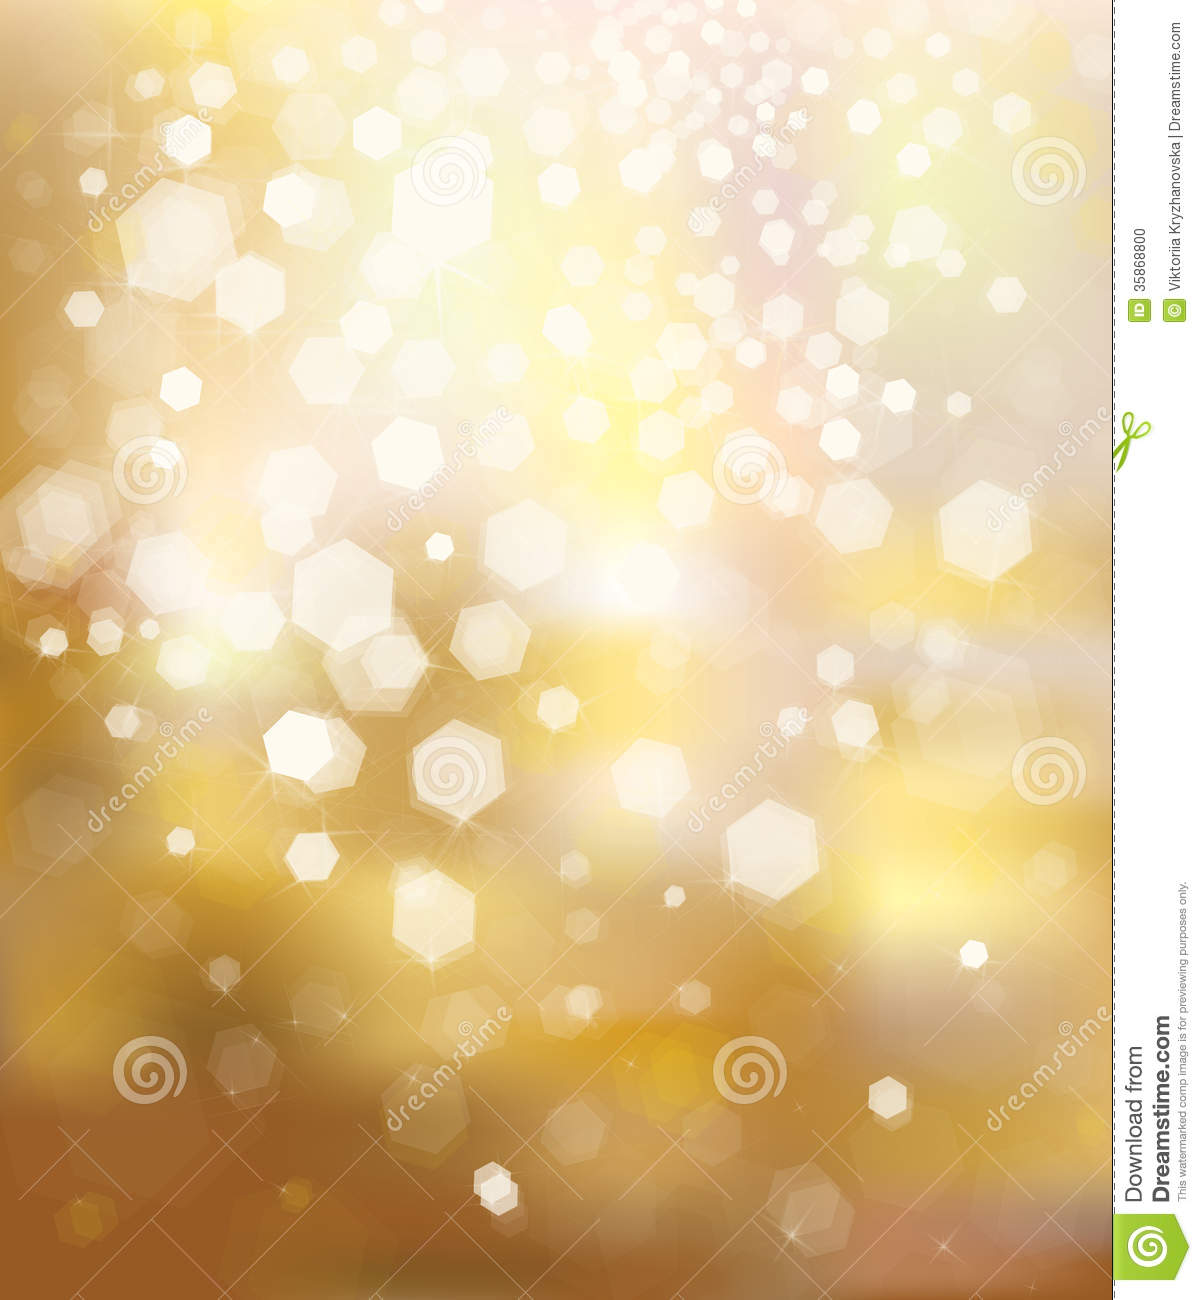 Gold glitter bright vector transparent background golden sparkles - Vector Glitter Golden Background